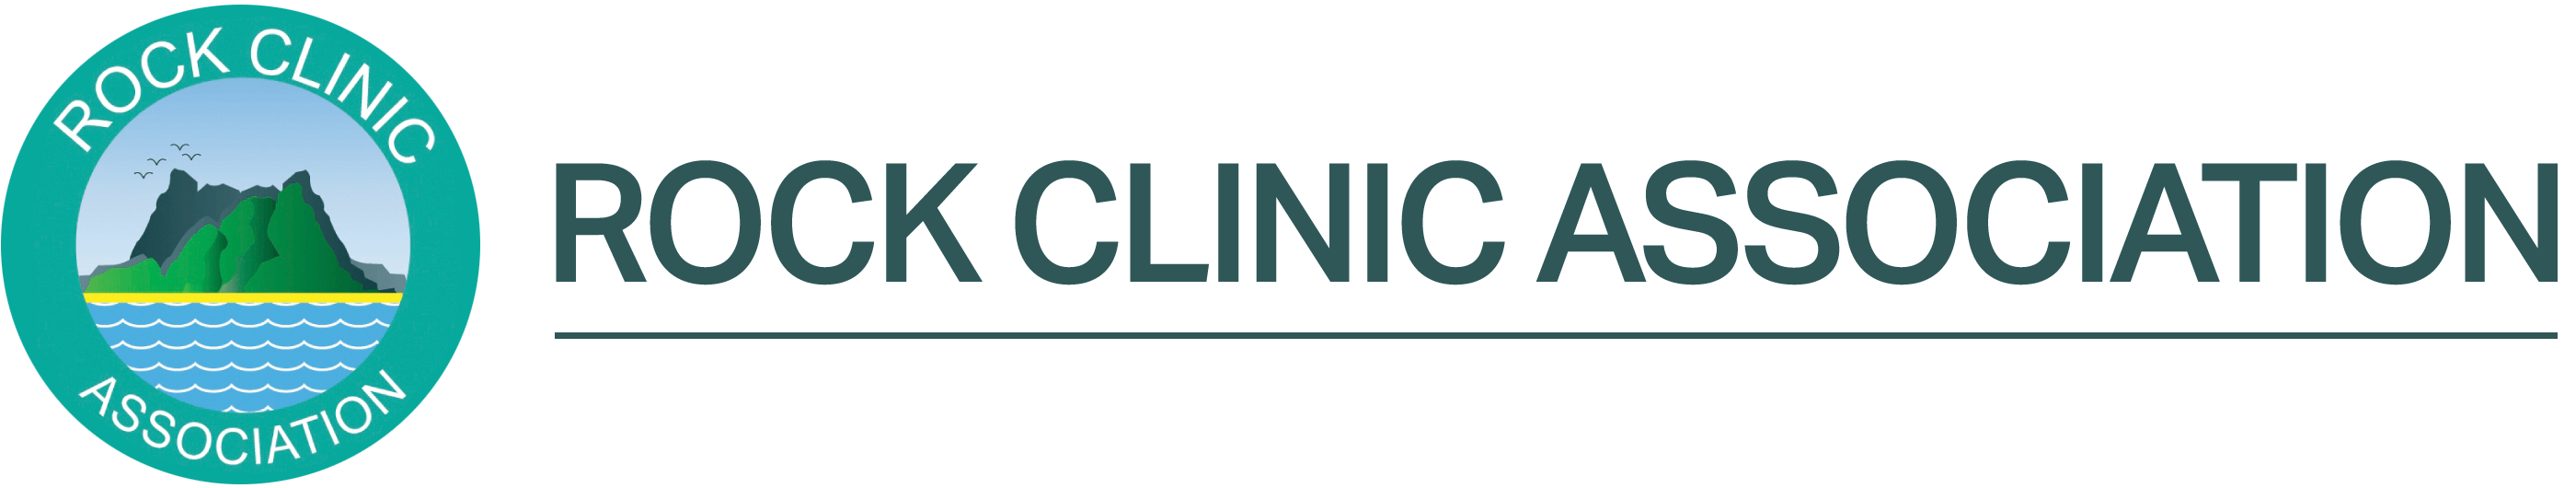 The Rock Clinic Association